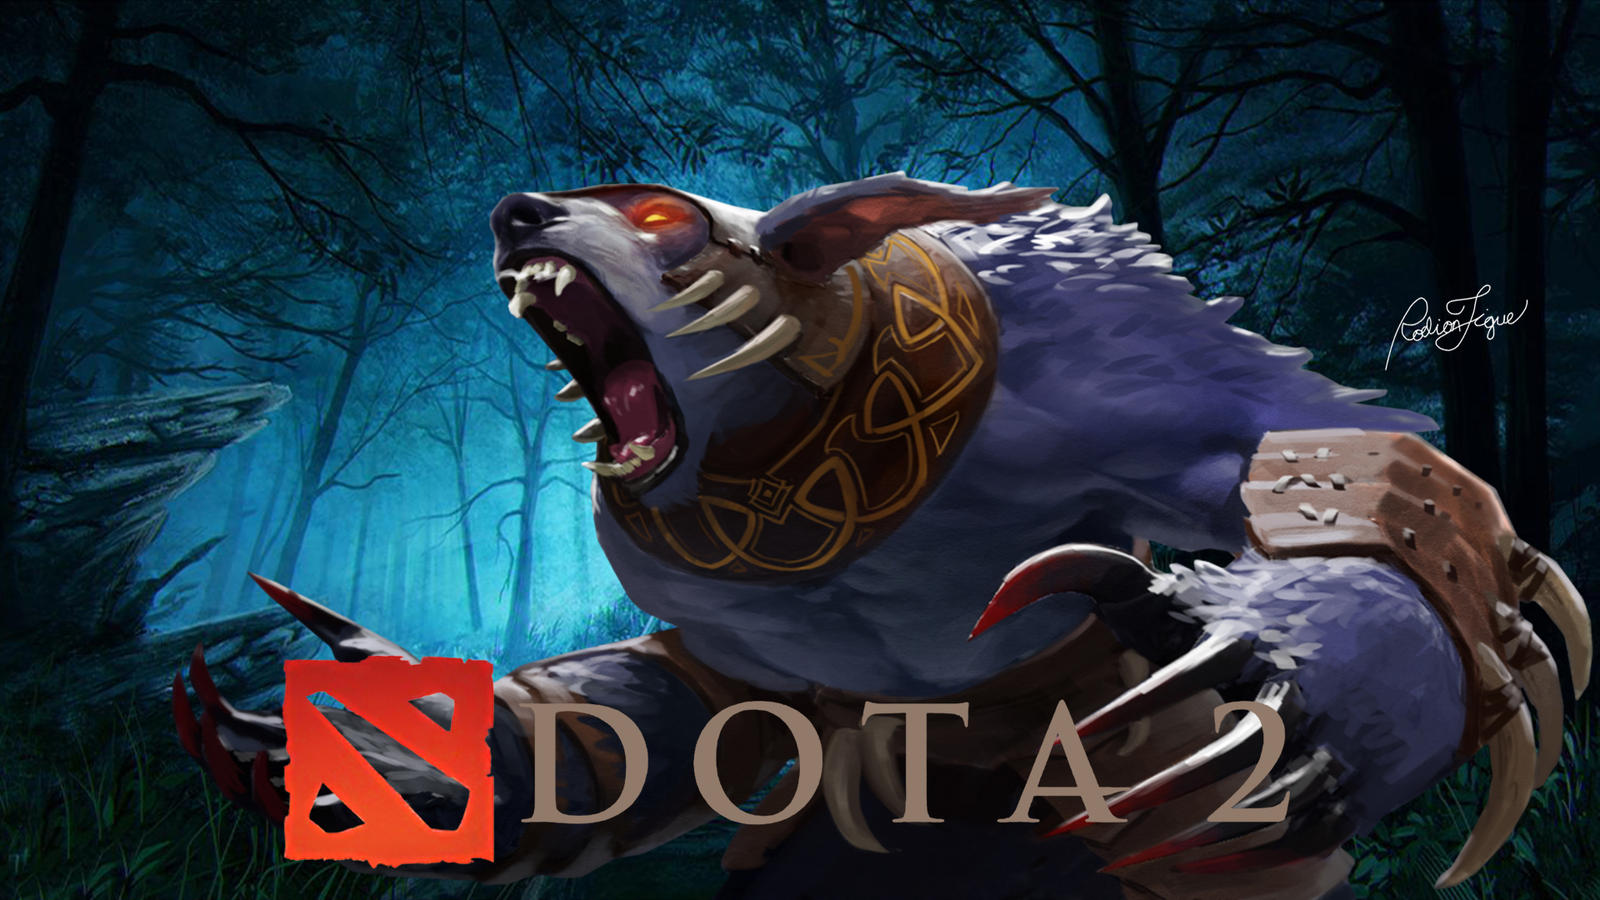 ursa warrior dota 2 by rodiontigue on deviantart